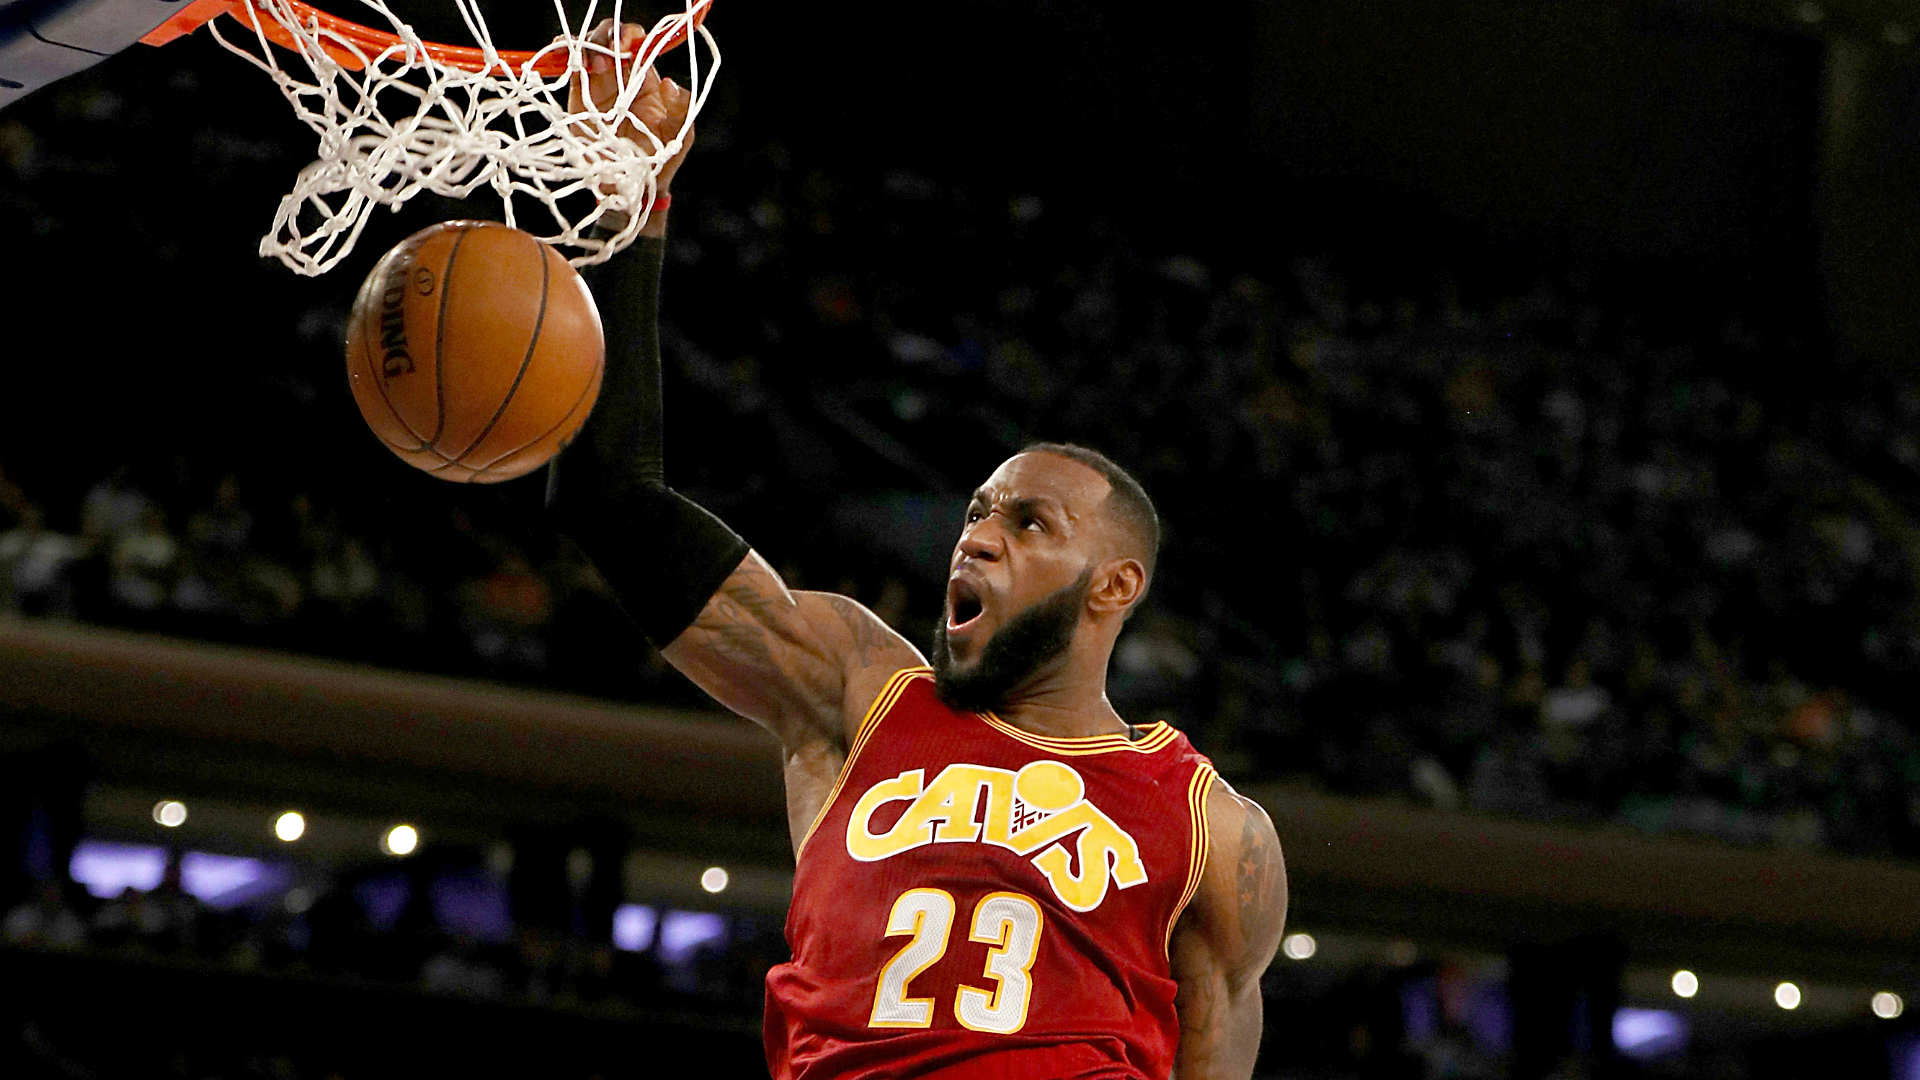 Lebron-james-120716-usnews-getty-ftr_1nuwso7e5nhnf1en65it9mi89m